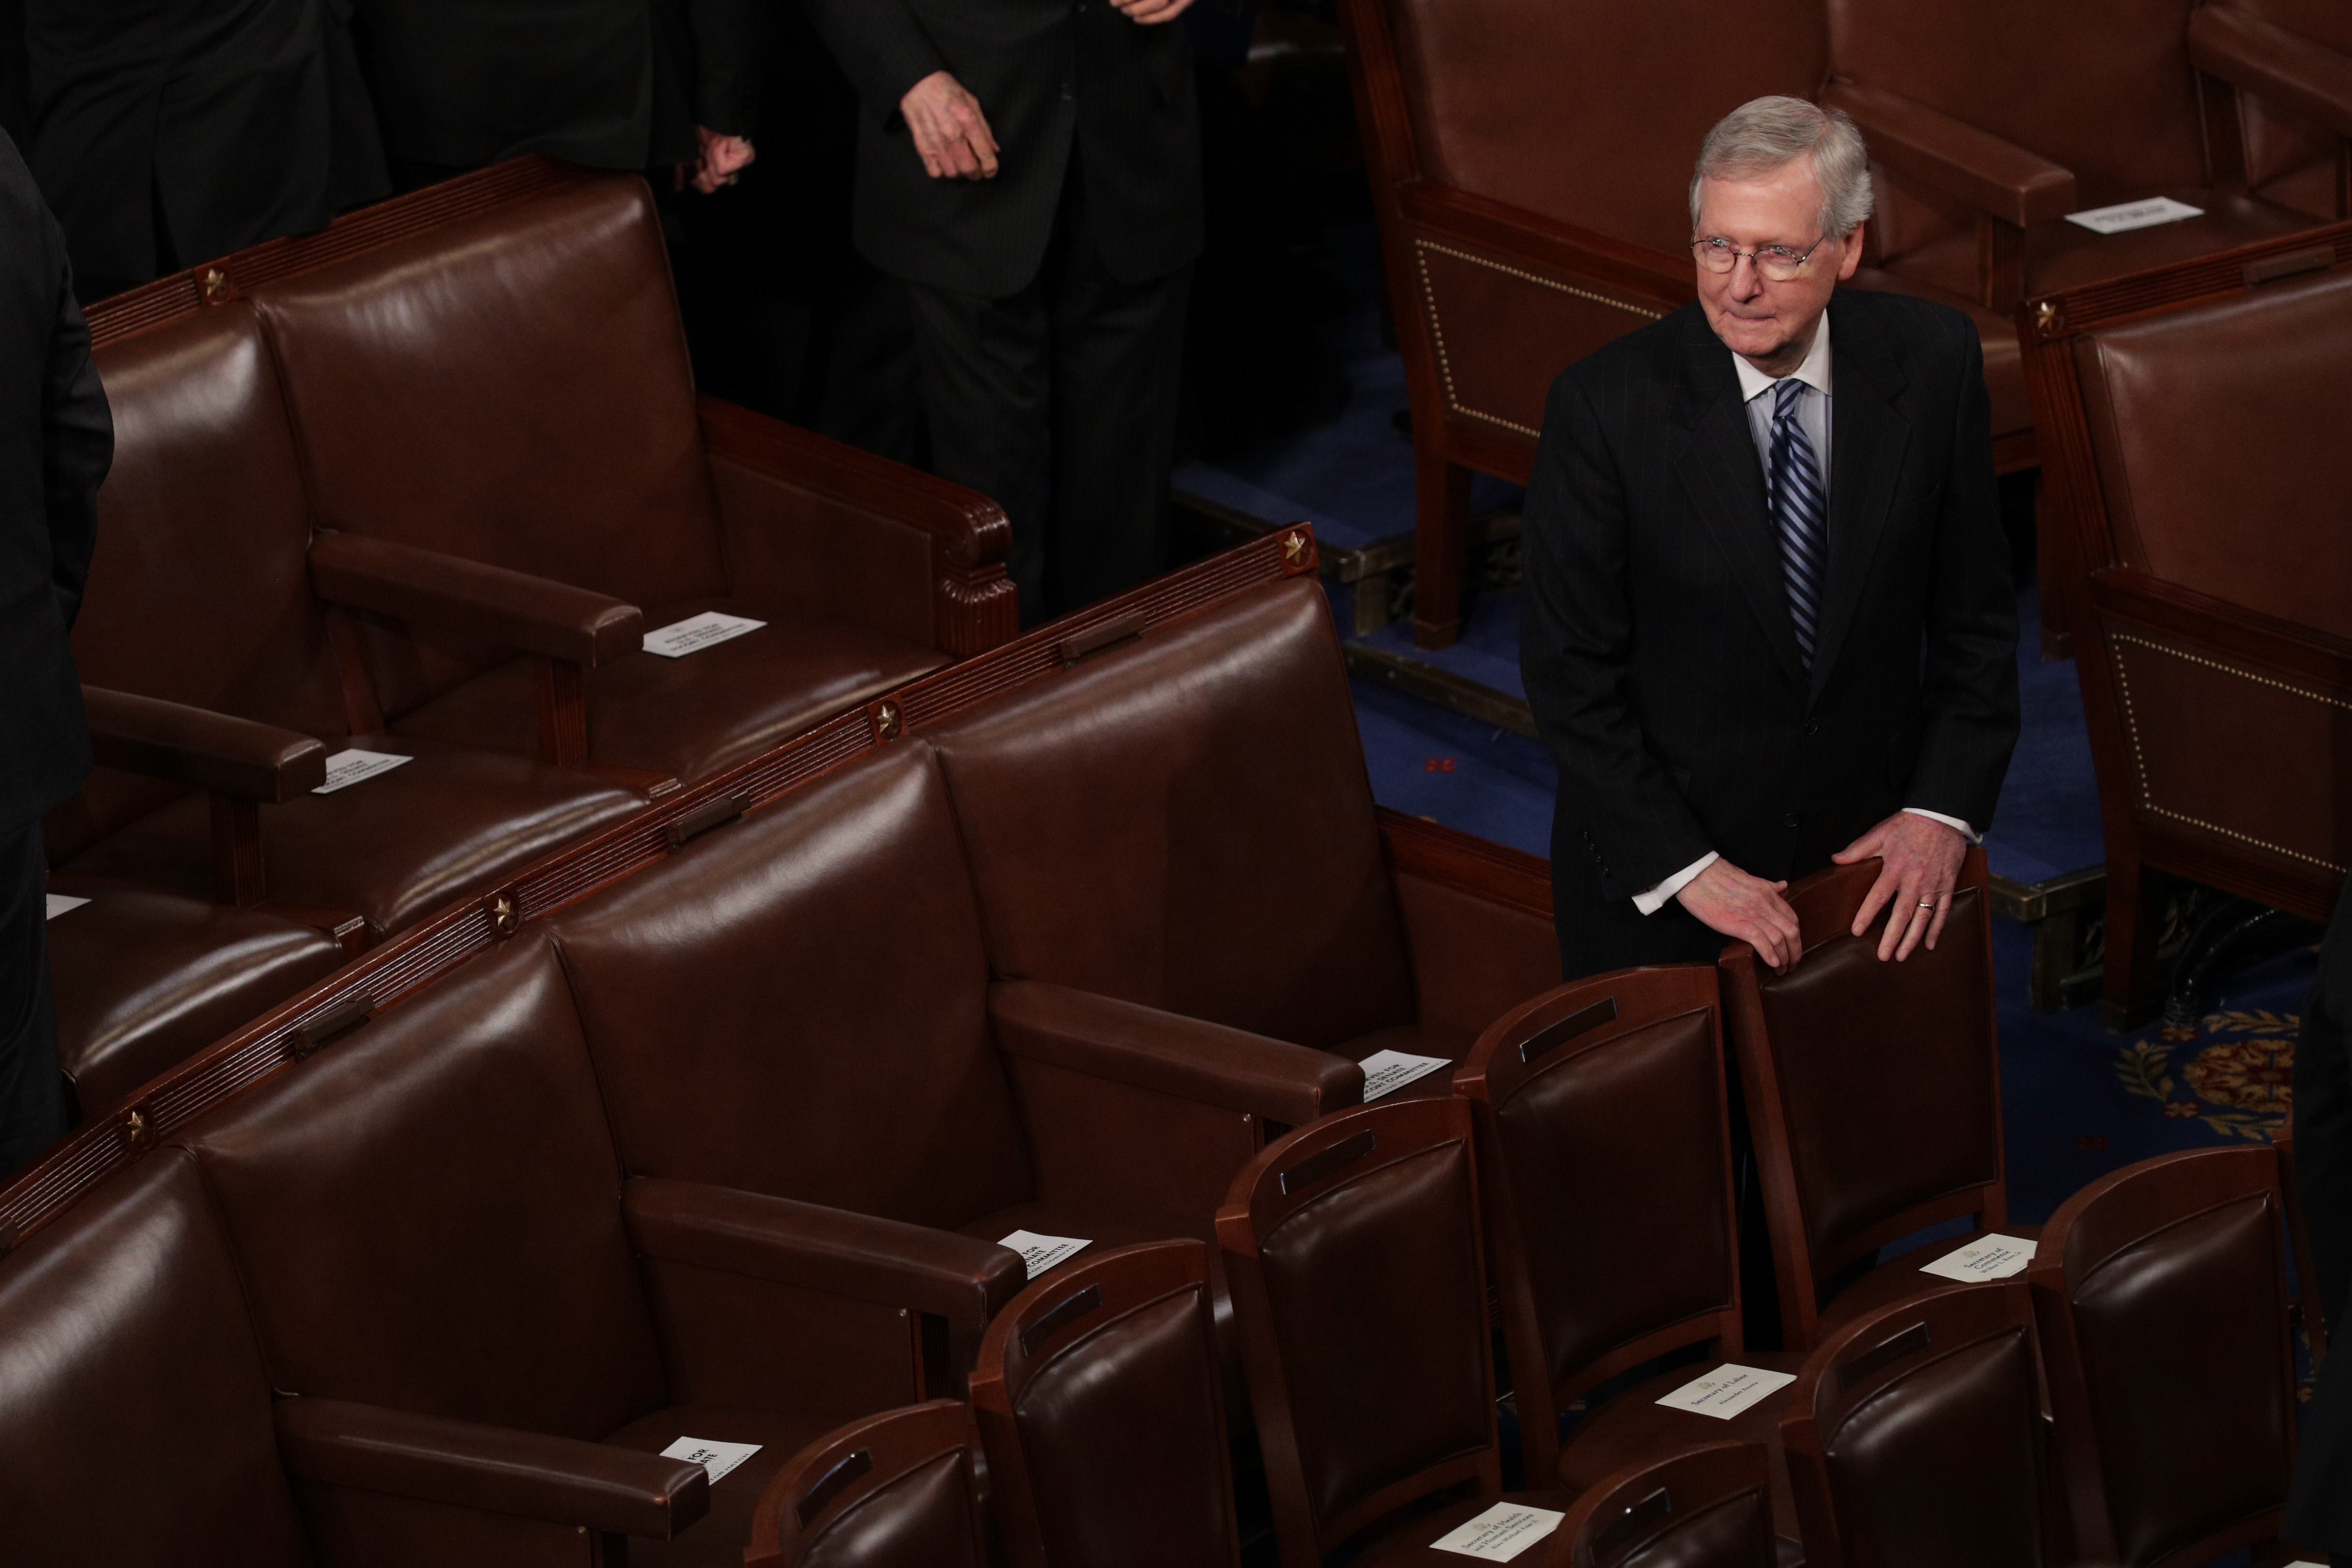 U.S. Senate Majority Leader Sen. Mitch McConnell (R-KY) waits for the start of the State of the Union address in the chamber of the U.S. House of Representatives January 30, 2018 in Washington, DC. This is the first State of the Union address given by U.S. President Donald Trump and his second joint-session address to Congress.